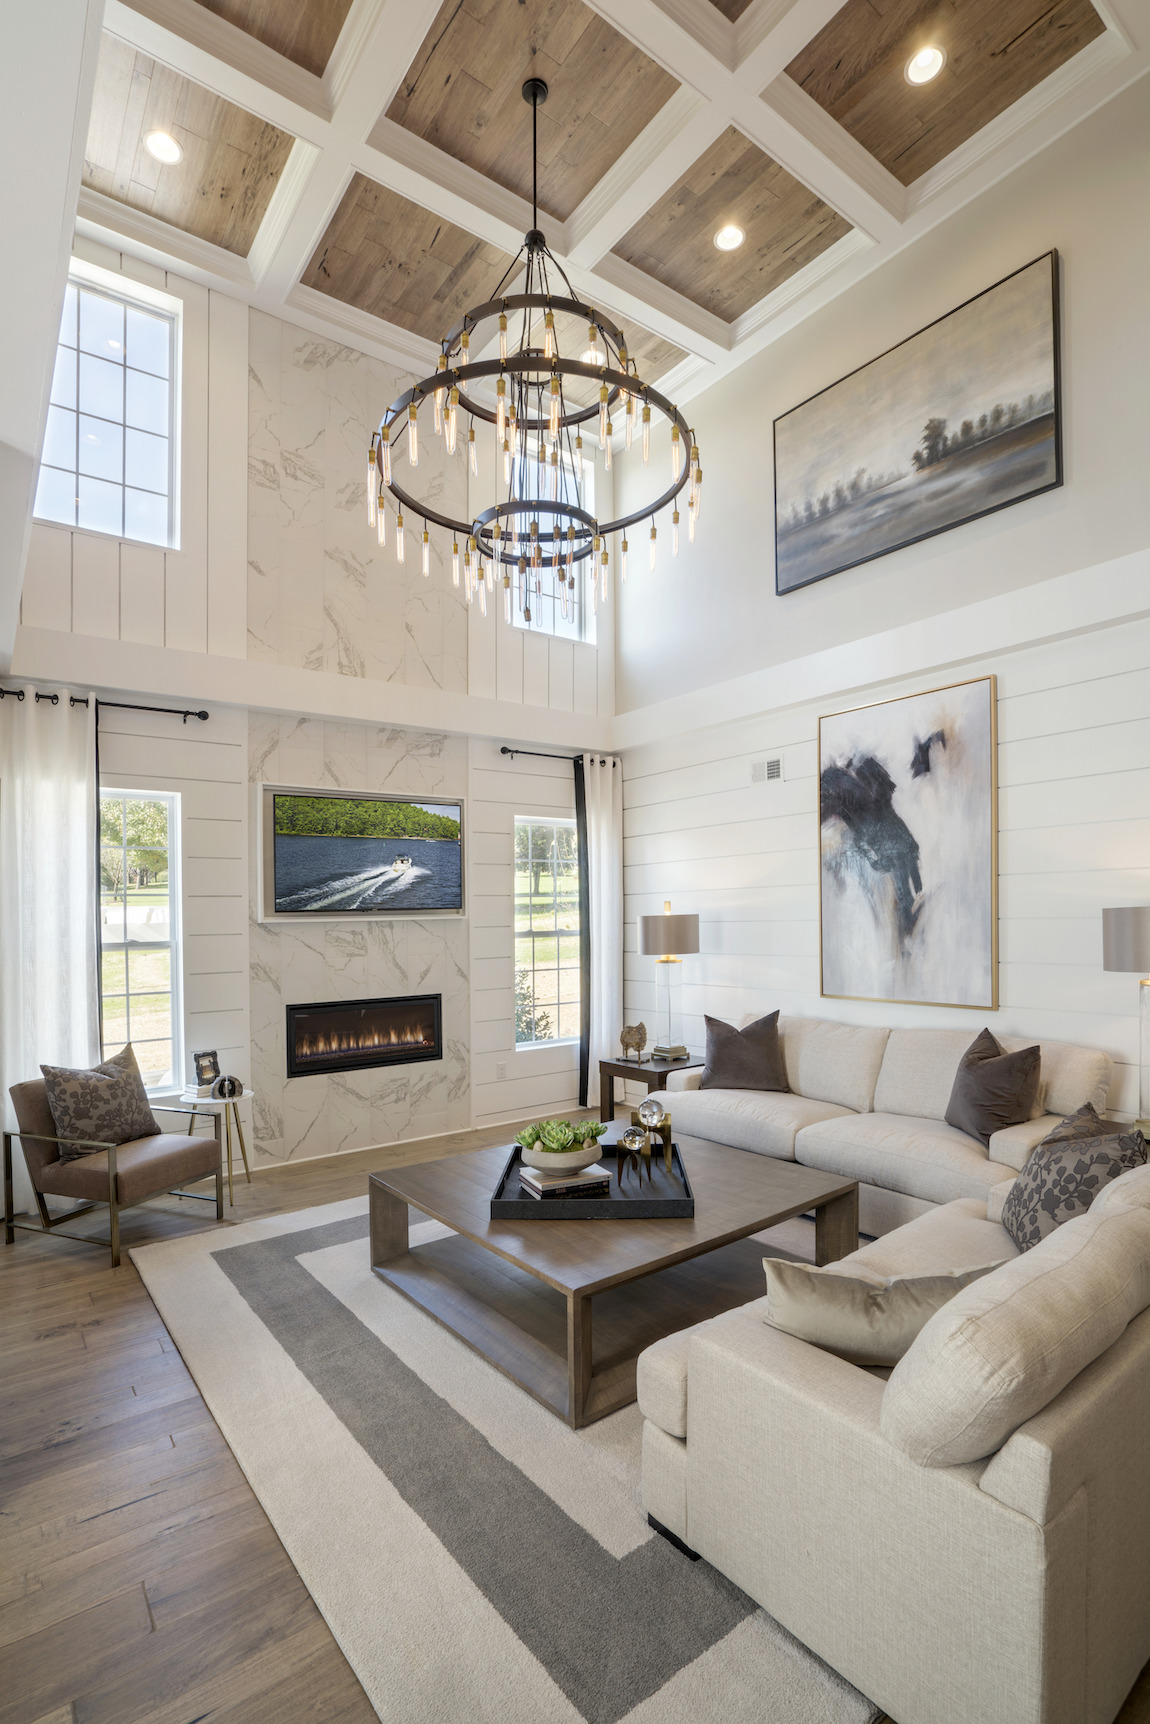 7 Key Elements of Transitional Design | Build Beautiful